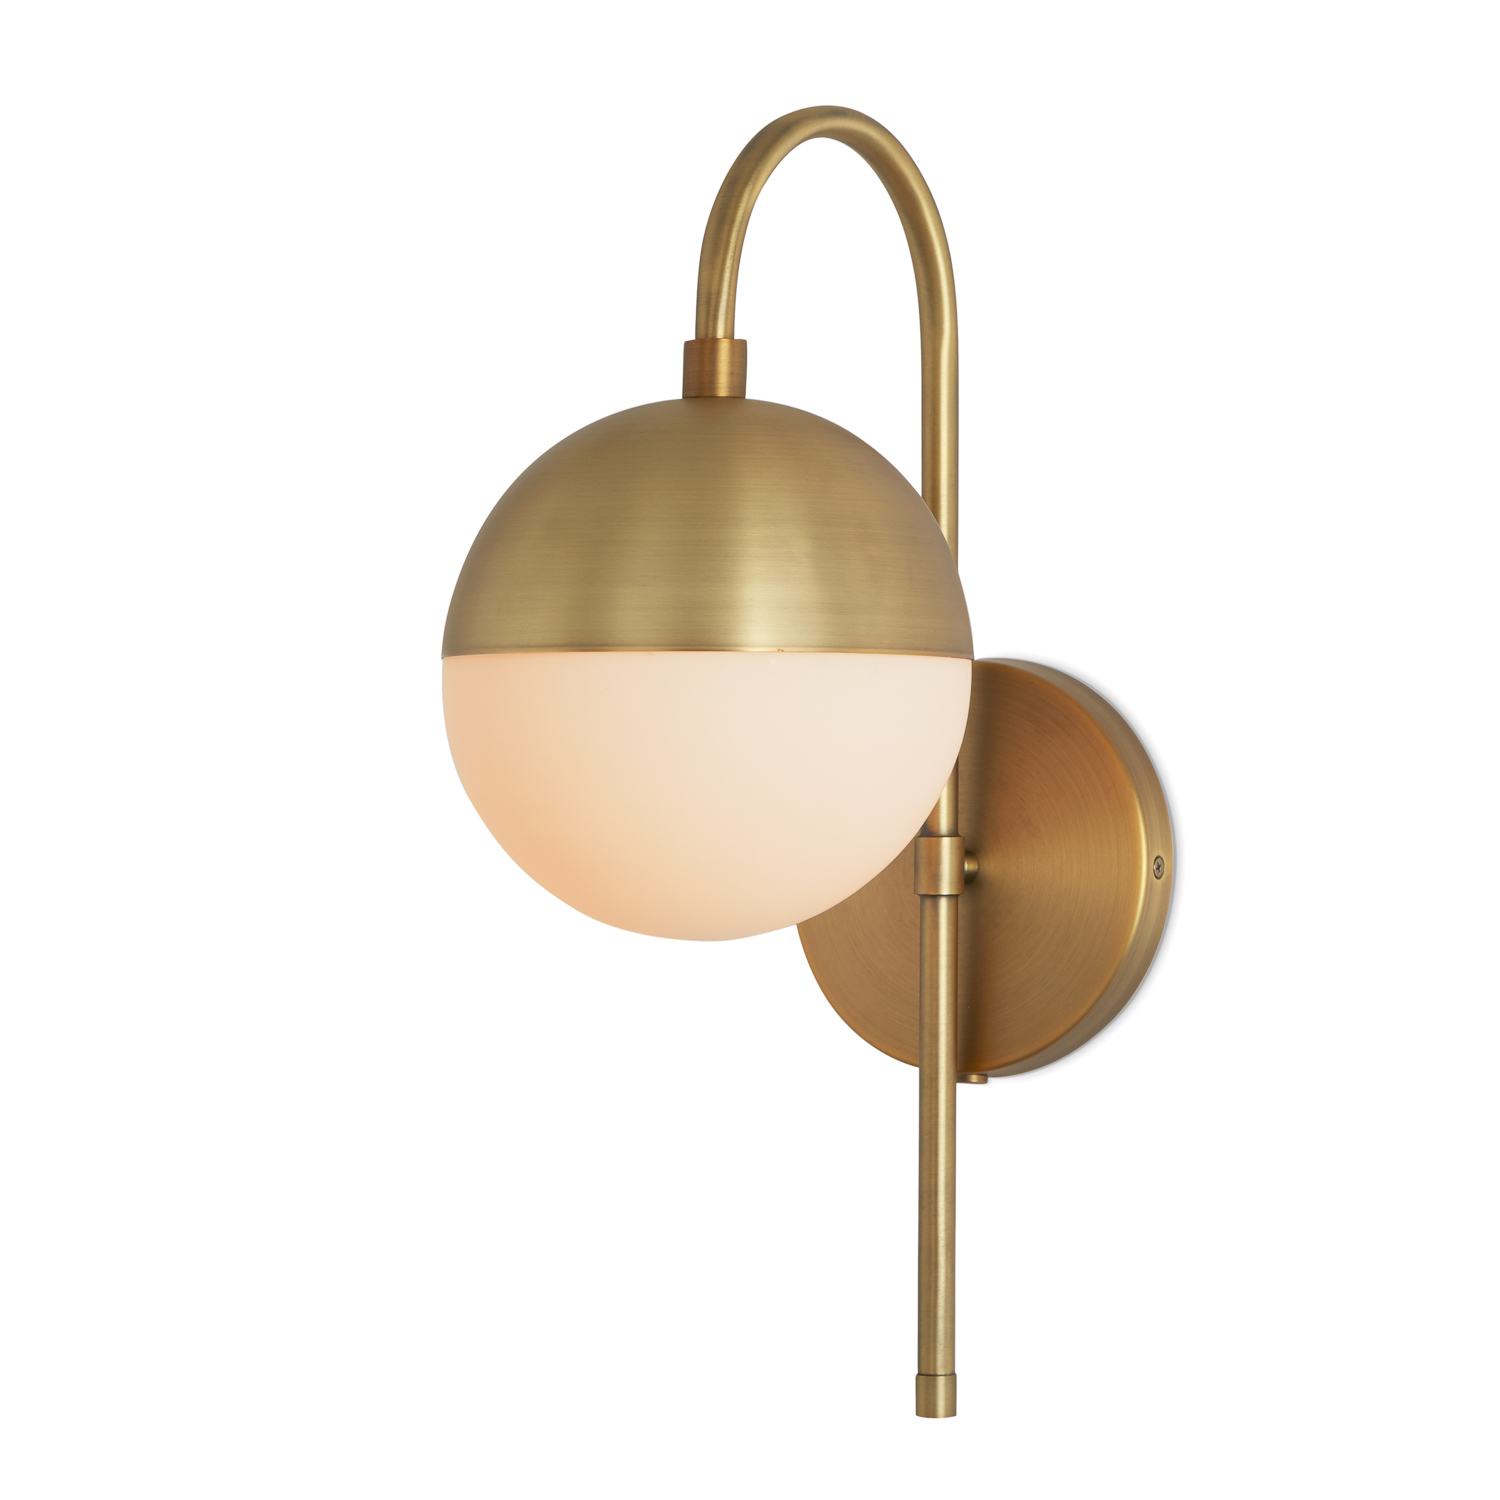 Lightscom Wall Lights Powell Wall Sconce With Hooded